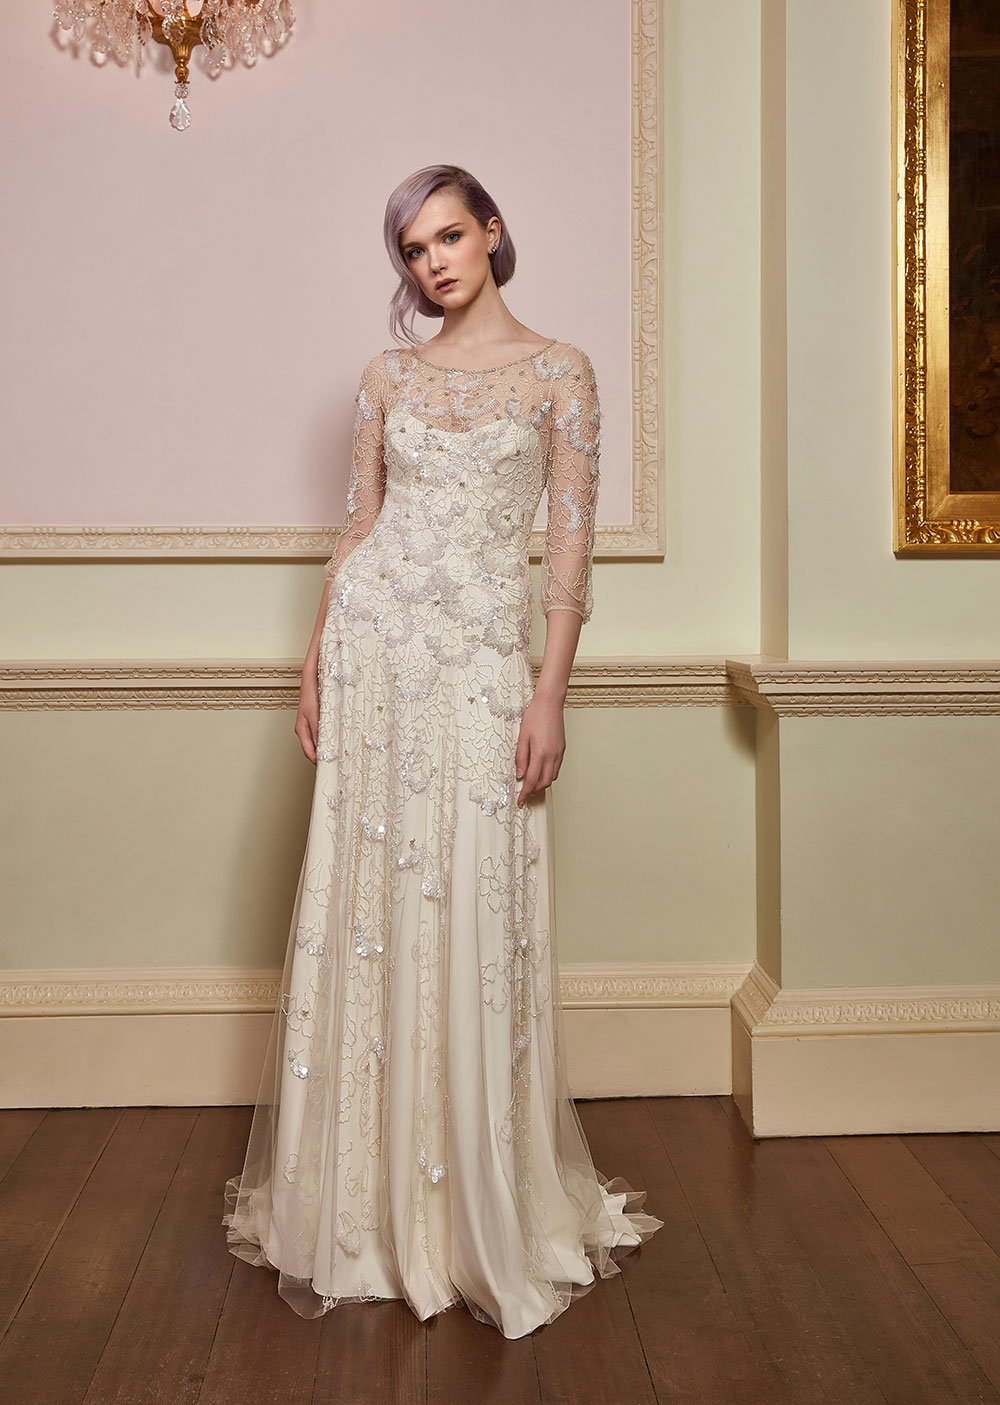 Freedom Ivory - Jenny Packham 2018 Bridal Collection. www.theweddingnotebook.com